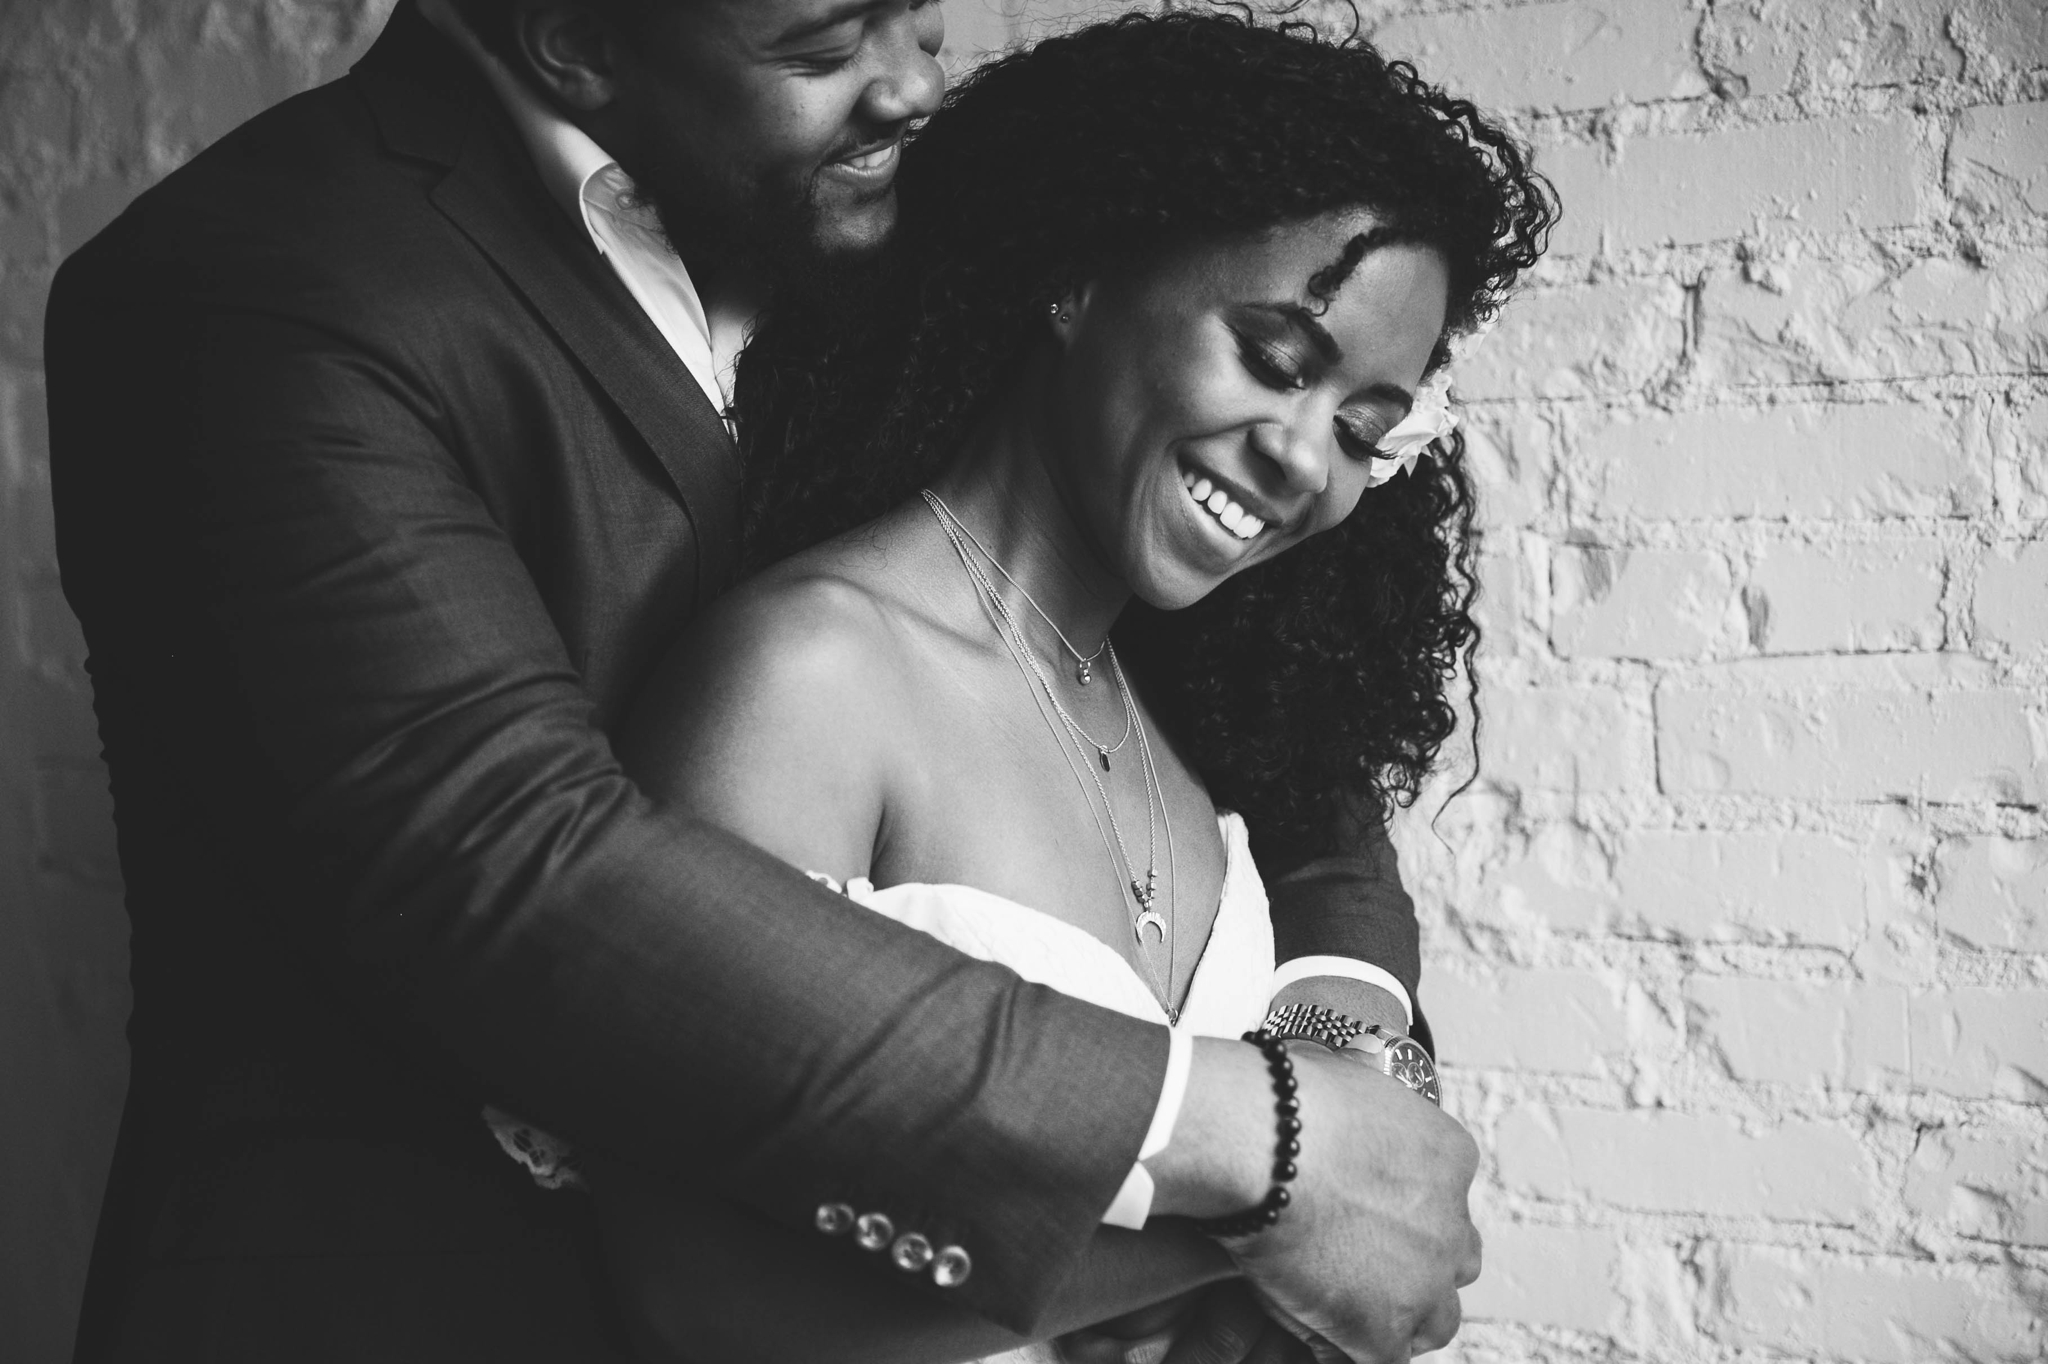 Natural light Indoor Portrait by a window of Bride and Groom - Black Love boho tropical wedding inspiration by Honolulu, Oahu, Hawaii Photographer - African American Couple